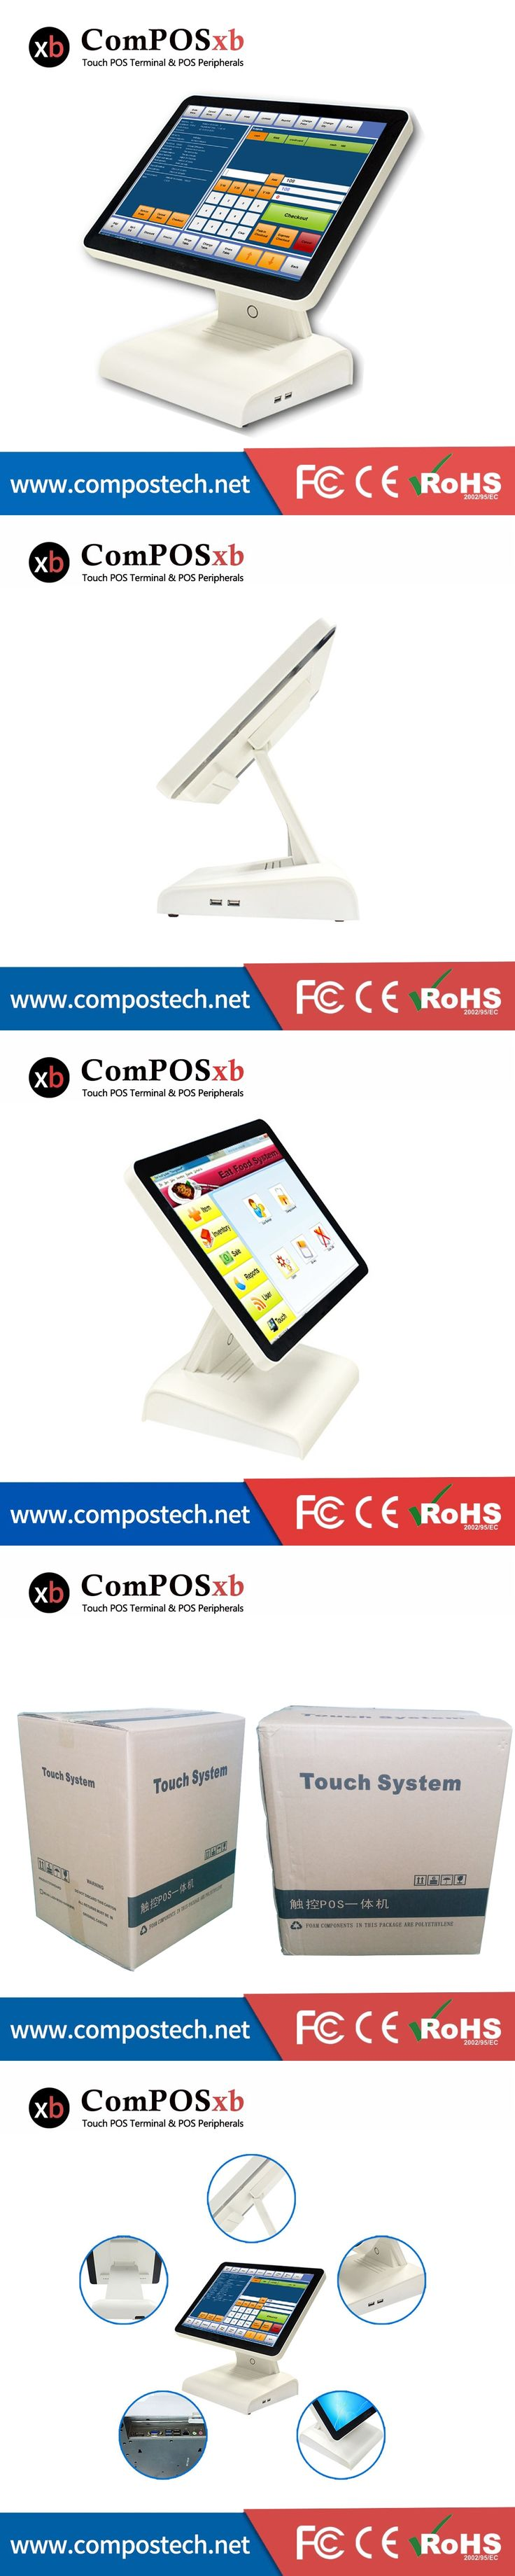 15 Inch Epos System Point Of Sale J1900 Quad Core 2.0GHz All In One Windows OS POS System For Retail Business